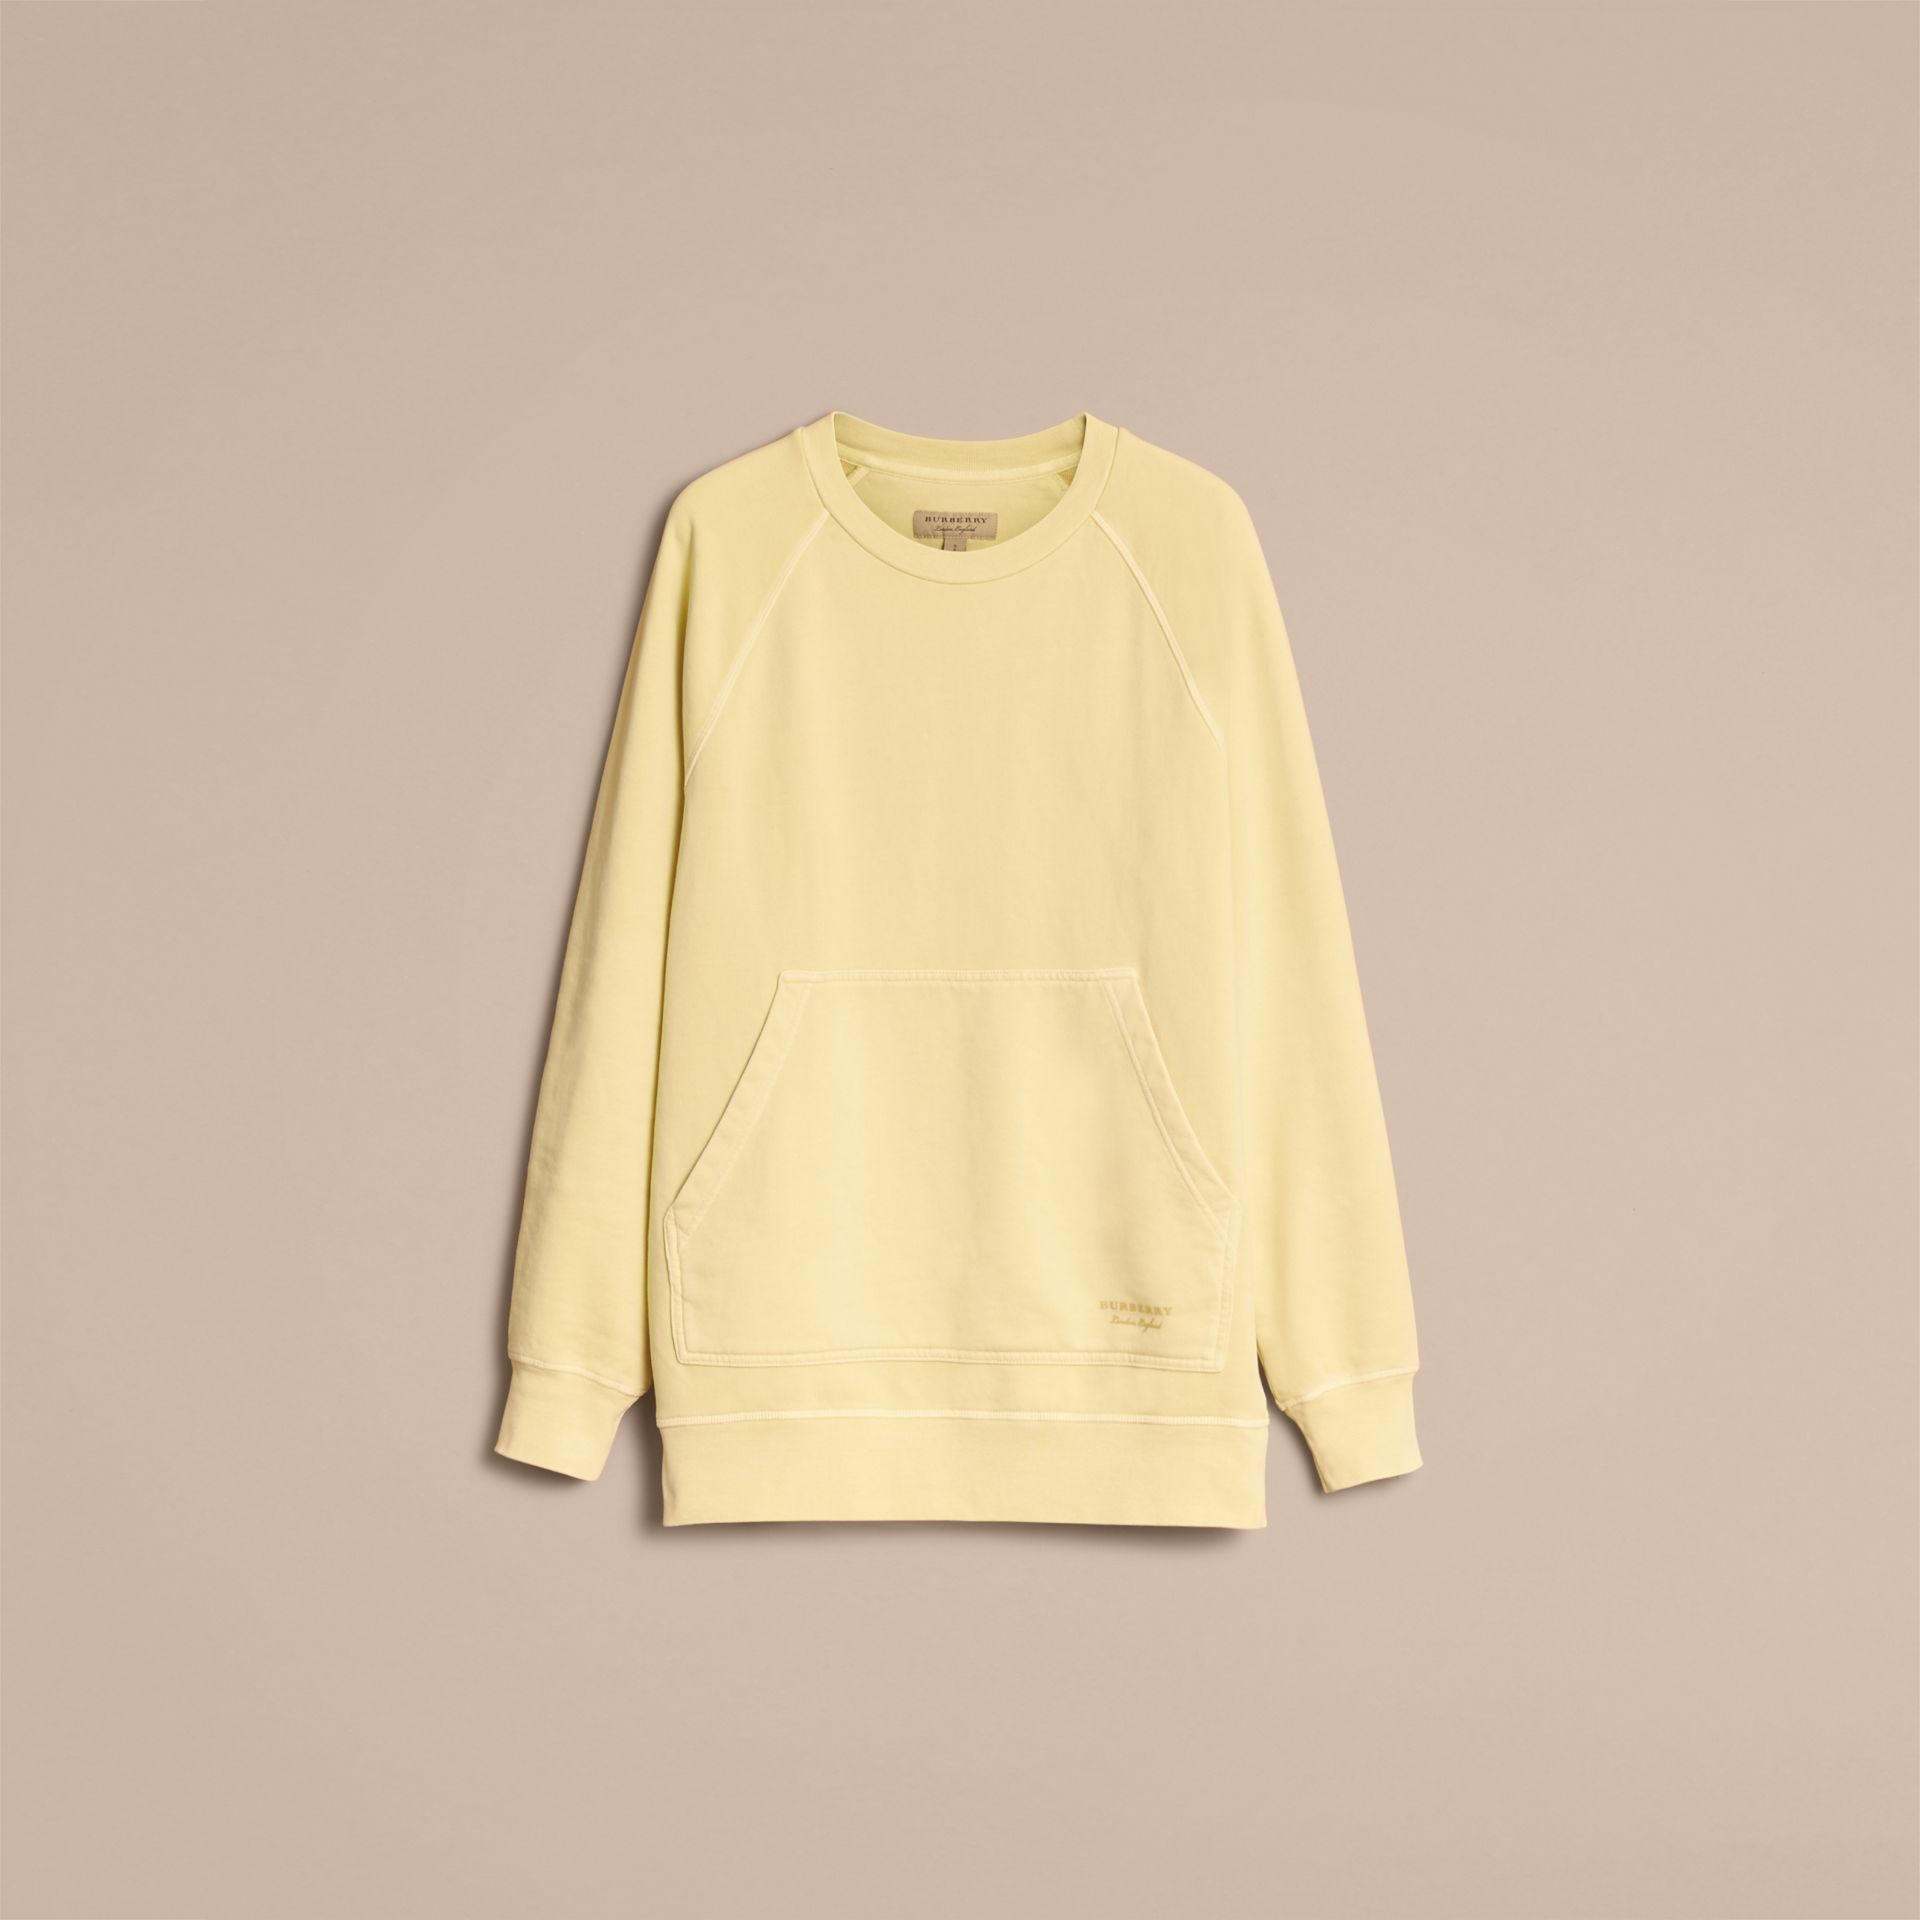 Unisex Pigment-dyed Cotton Oversize Sweatshirt in Pale Yellow - Women | Burberry Hong Kong - gallery image 4